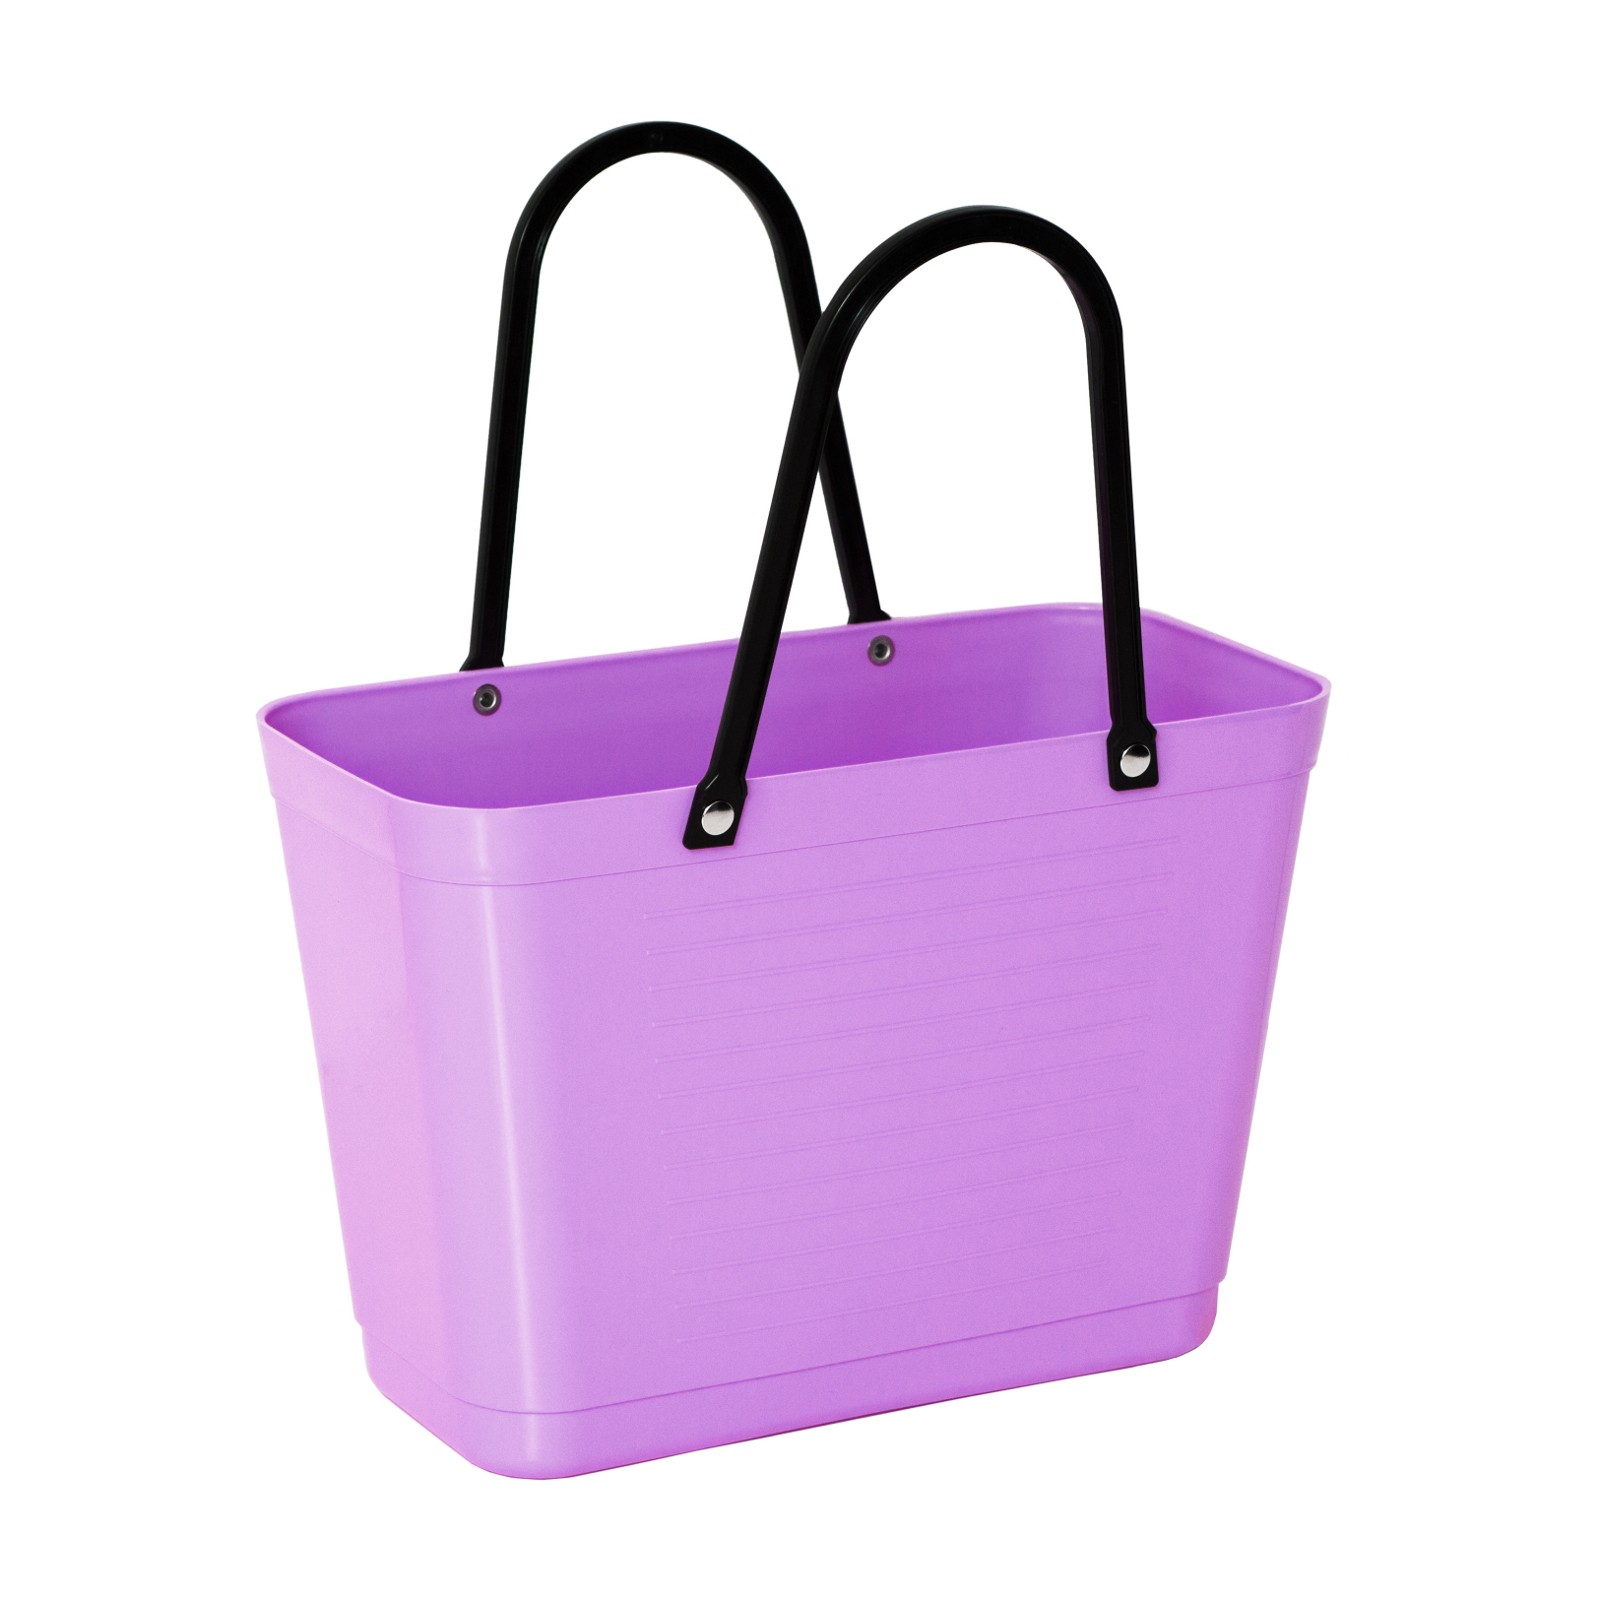 hinza liten 252-hinza-bag-small-purple-green-plastic